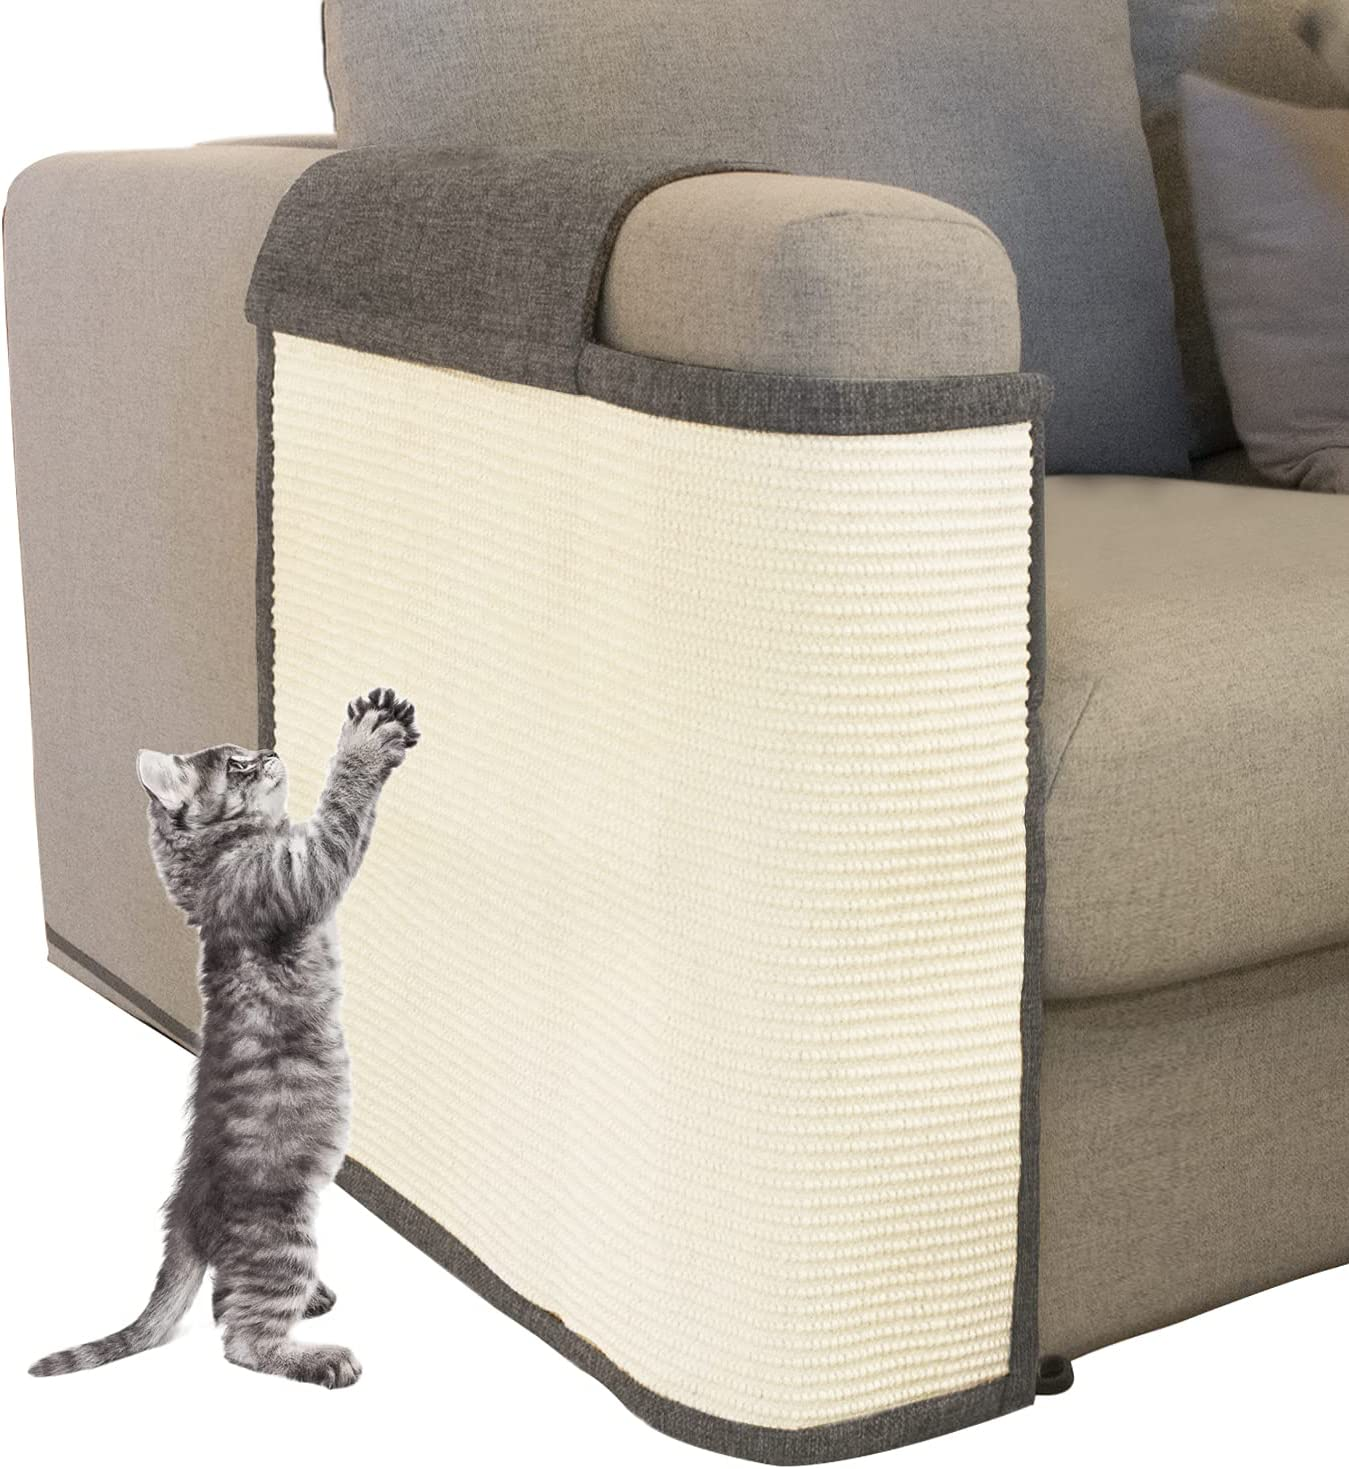 Oroonoko Cat Scratch Furniture Protector with Natural Sisal for Protecting Couch Sofa Chair Furniture